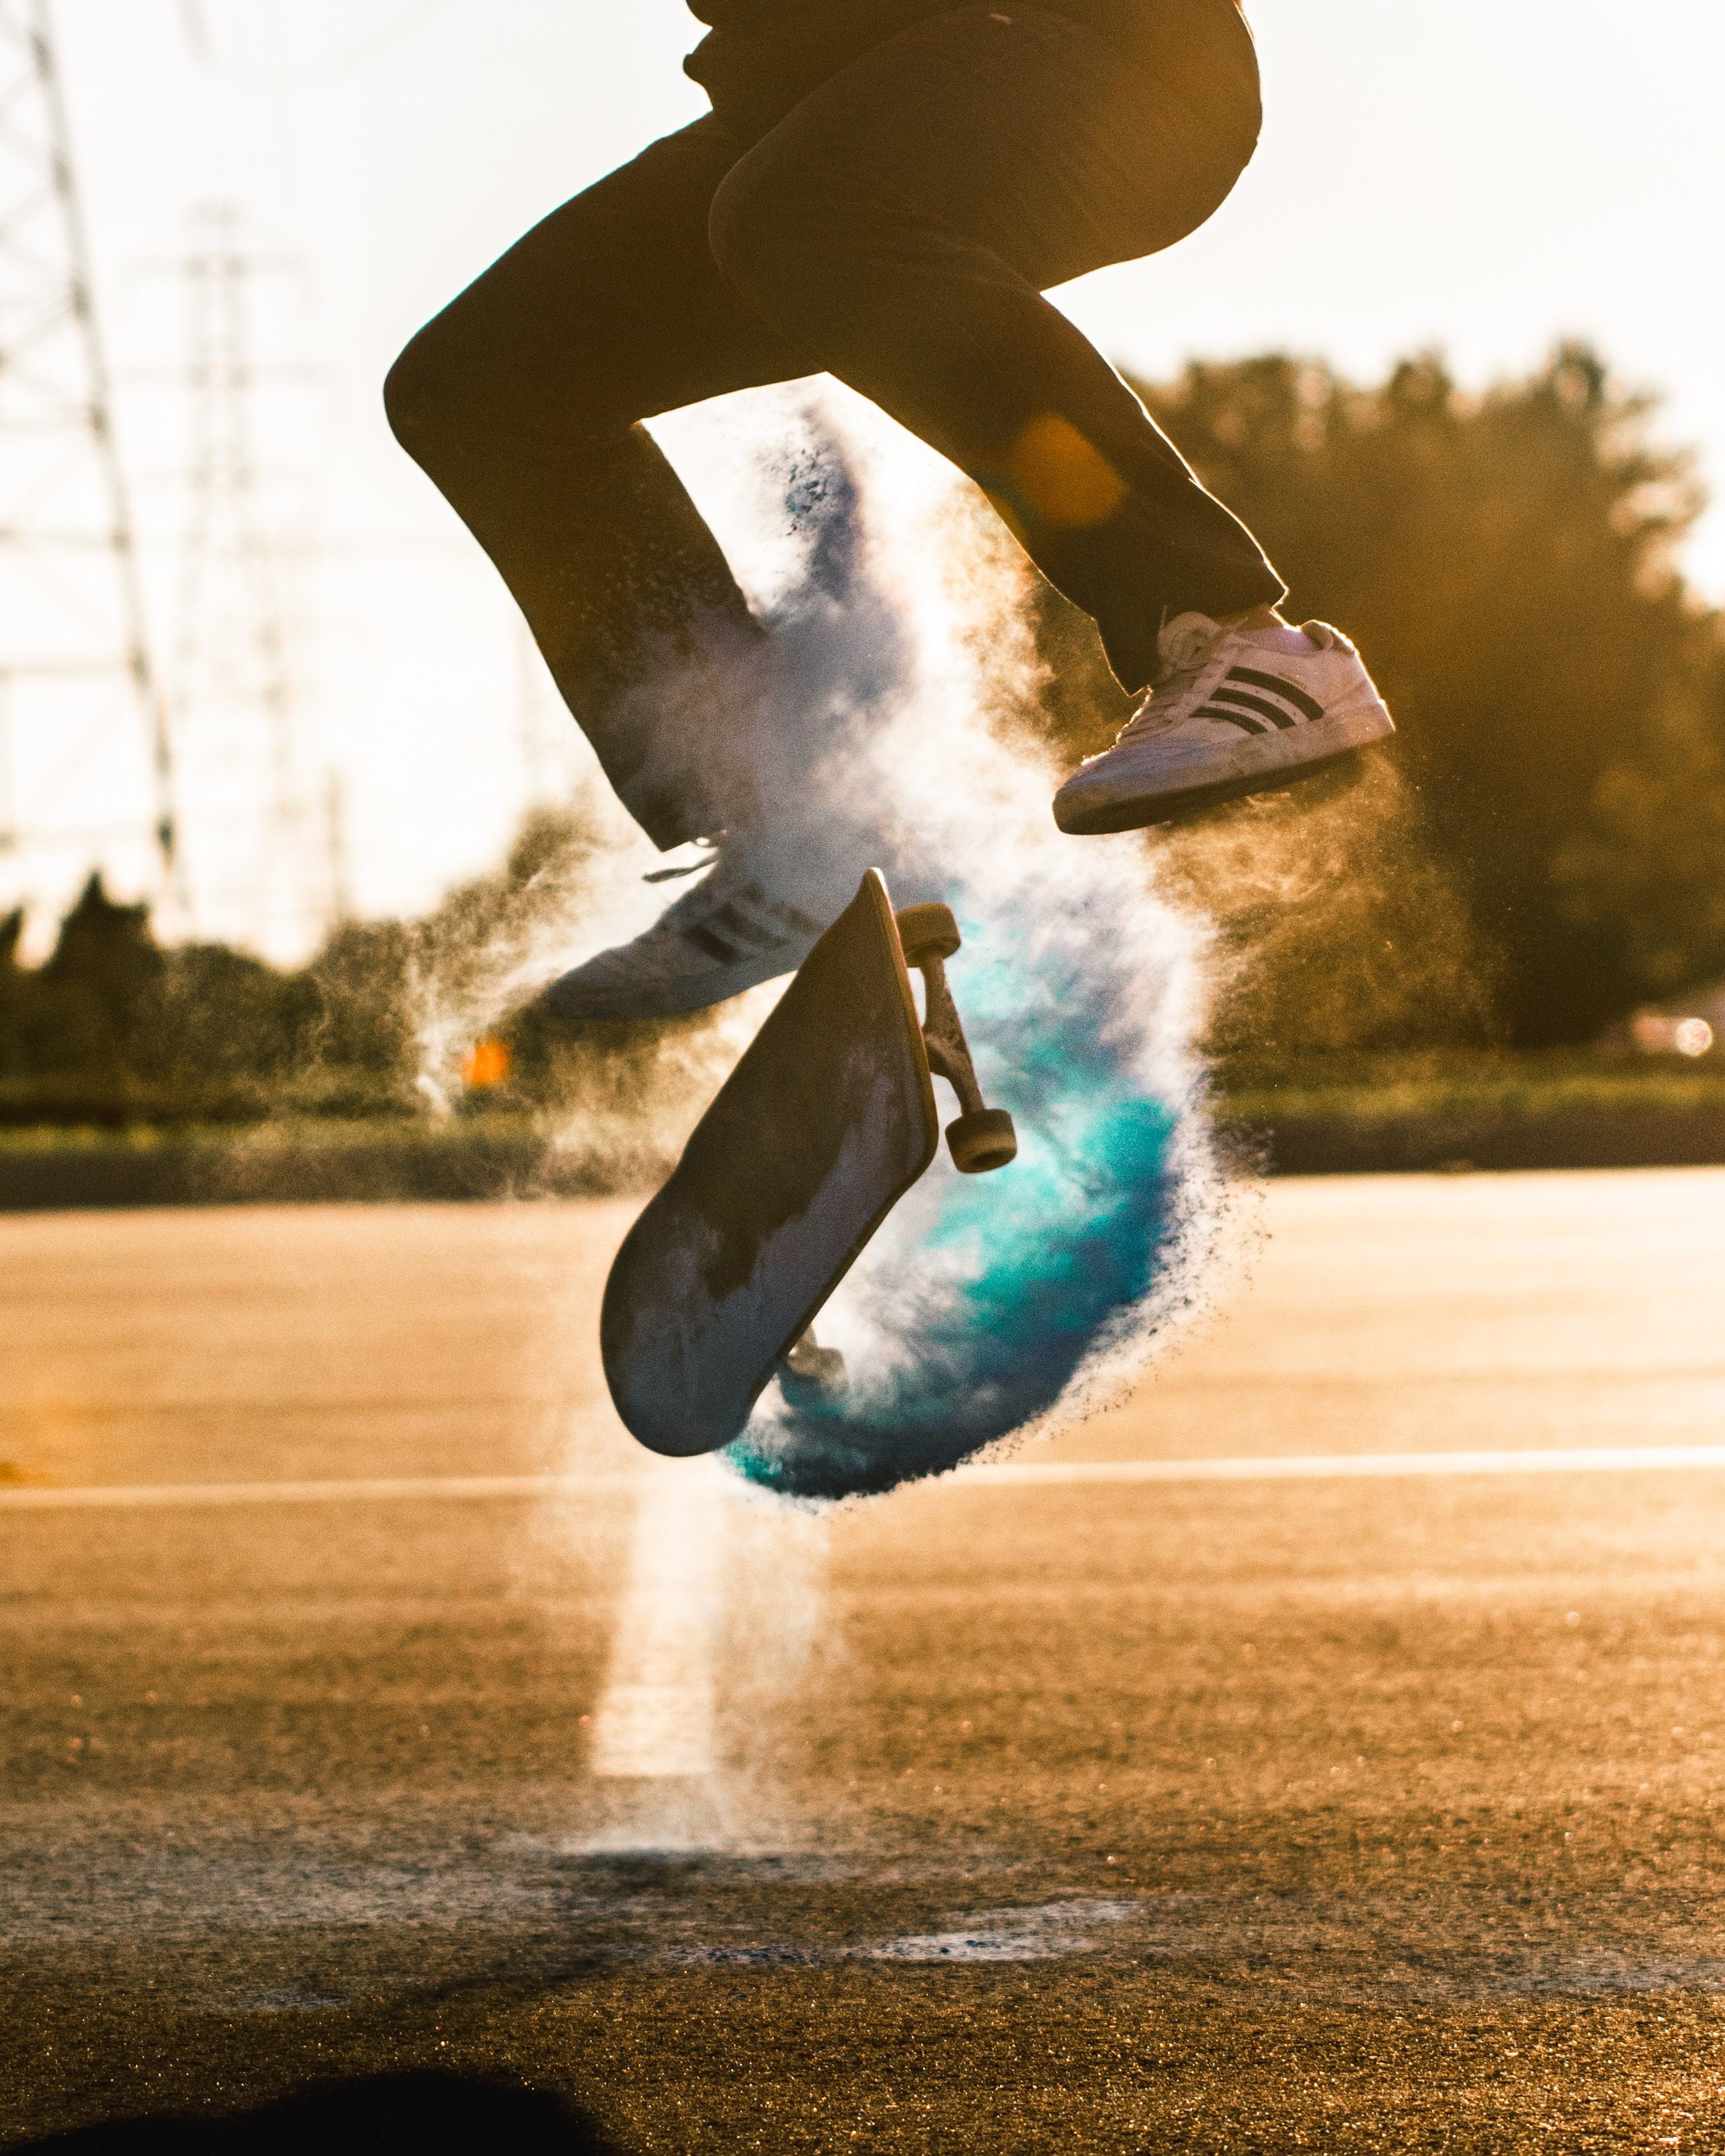 121348 download wallpaper Sports, Skate, Skateboard, Cloud, Bounce, Jump, Trick screensavers and pictures for free